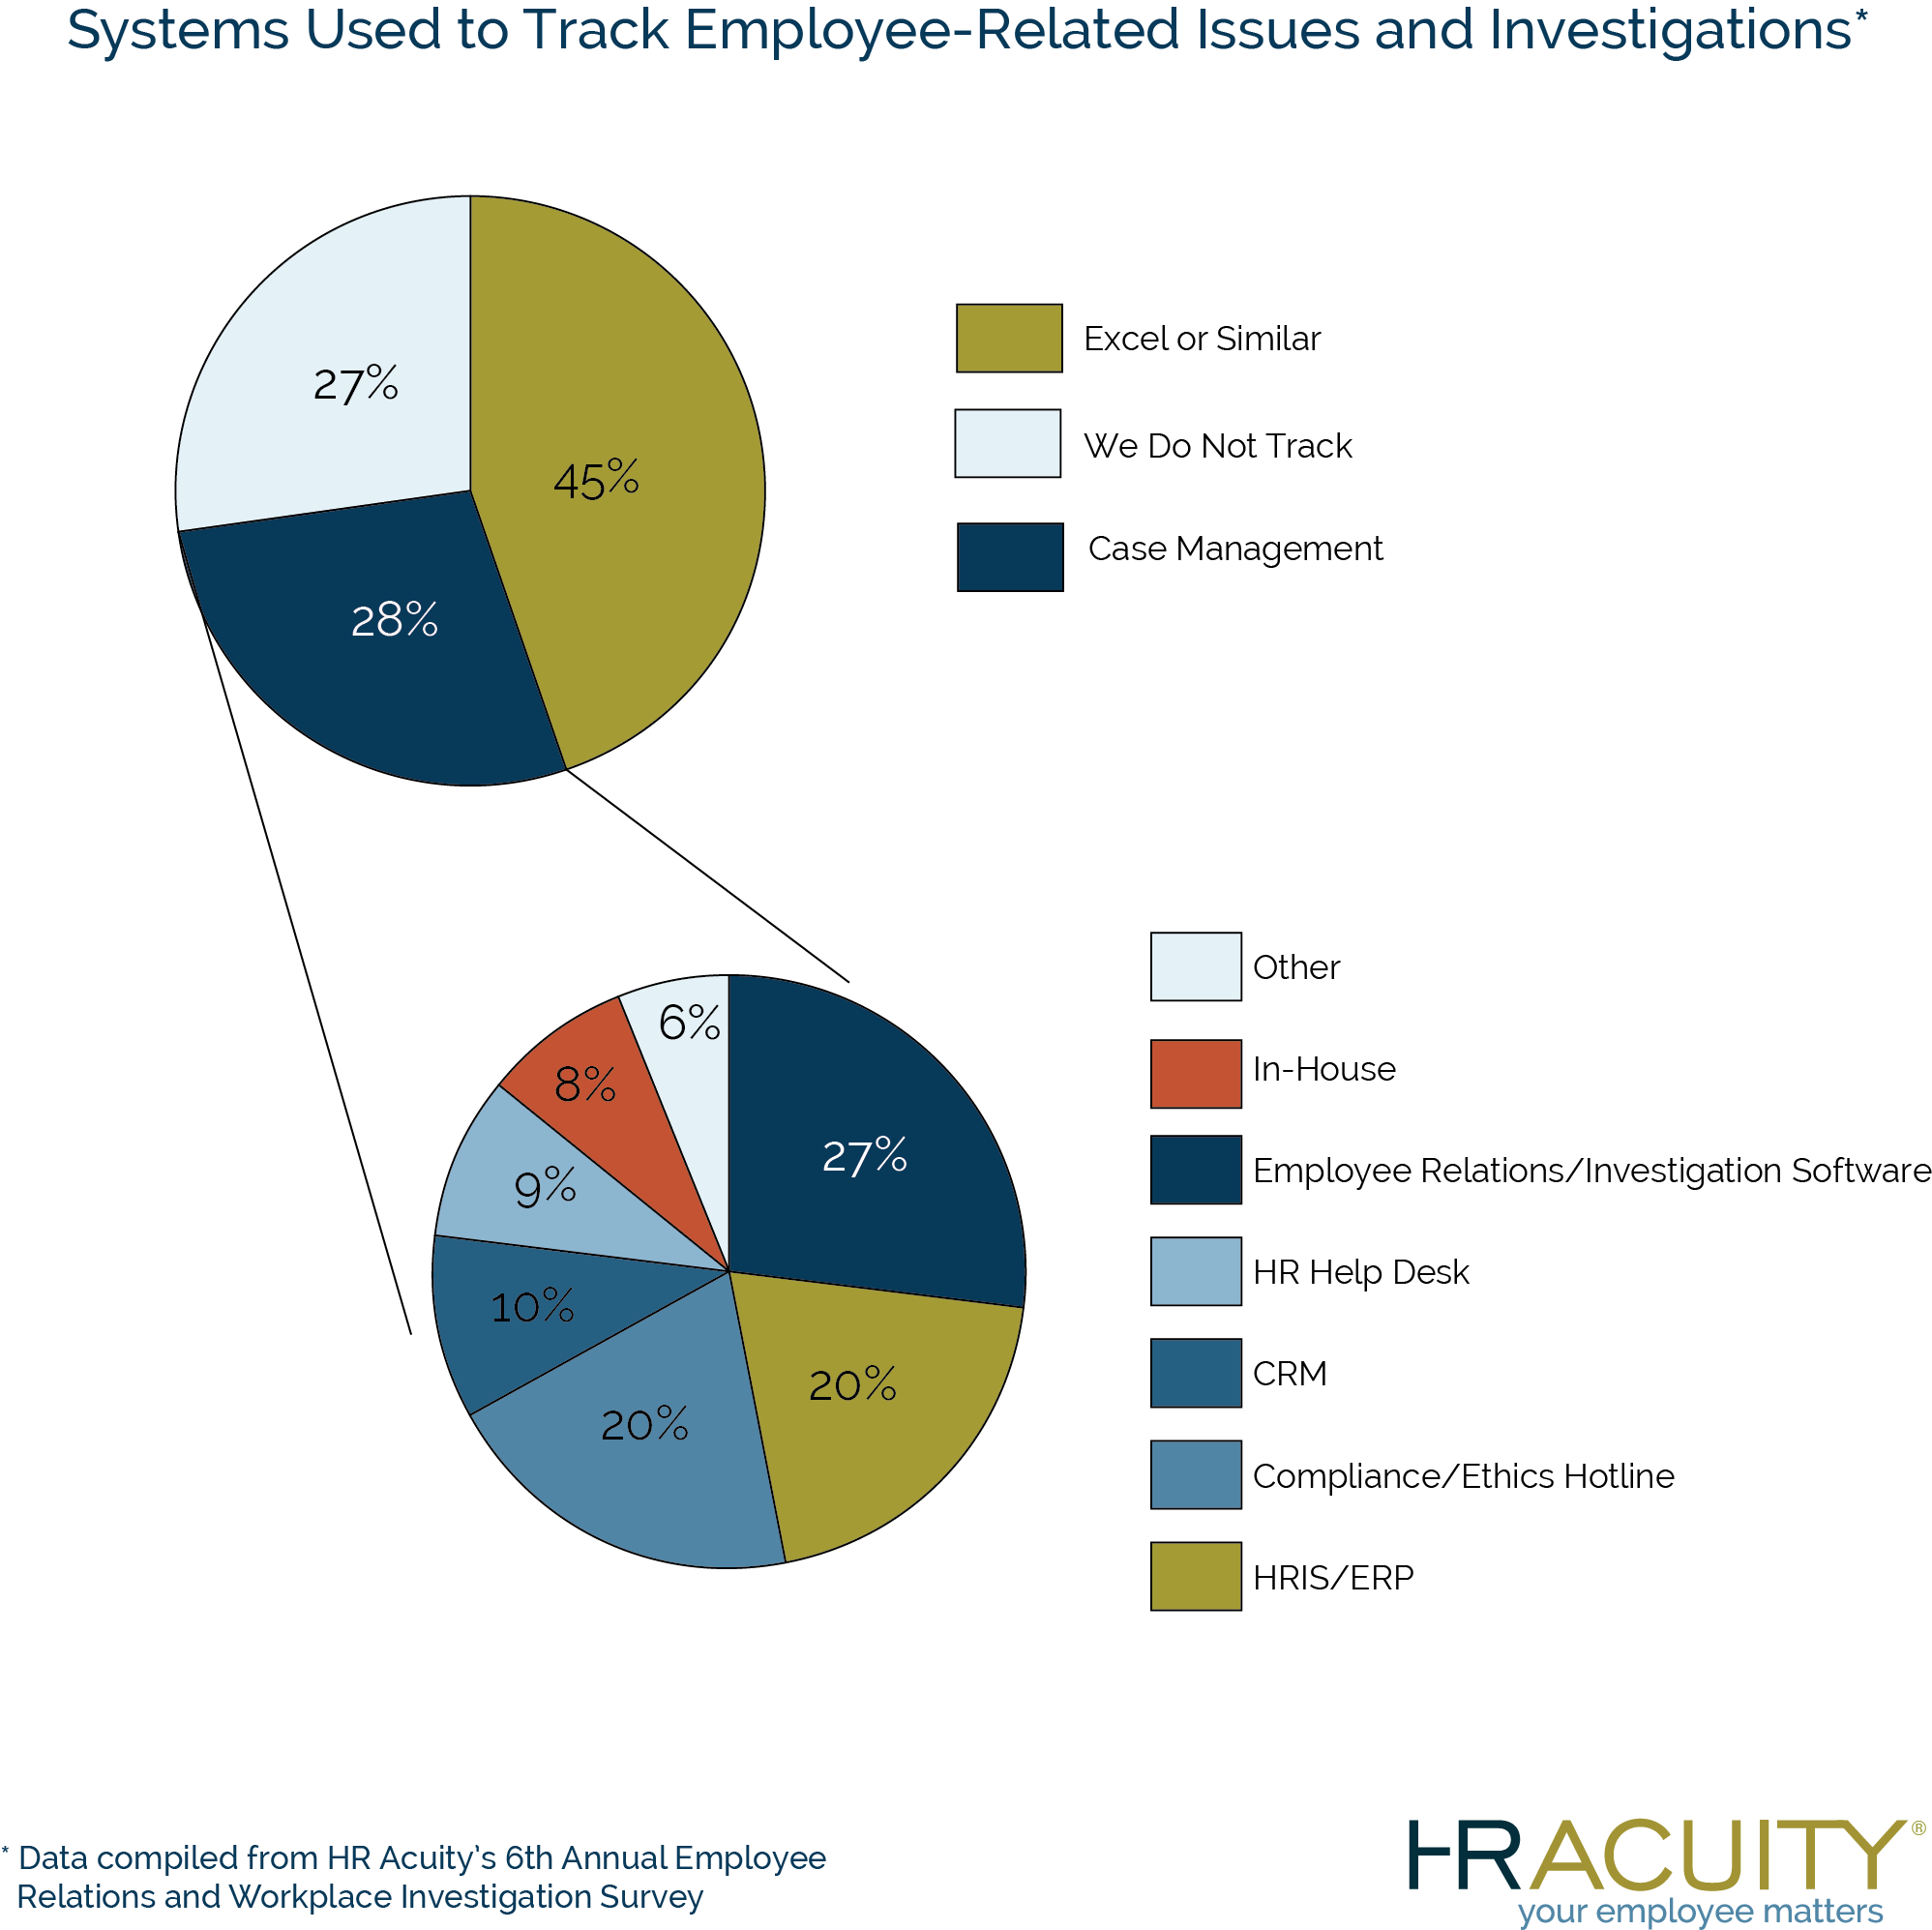 Systems used to track employee-related issues and investigations